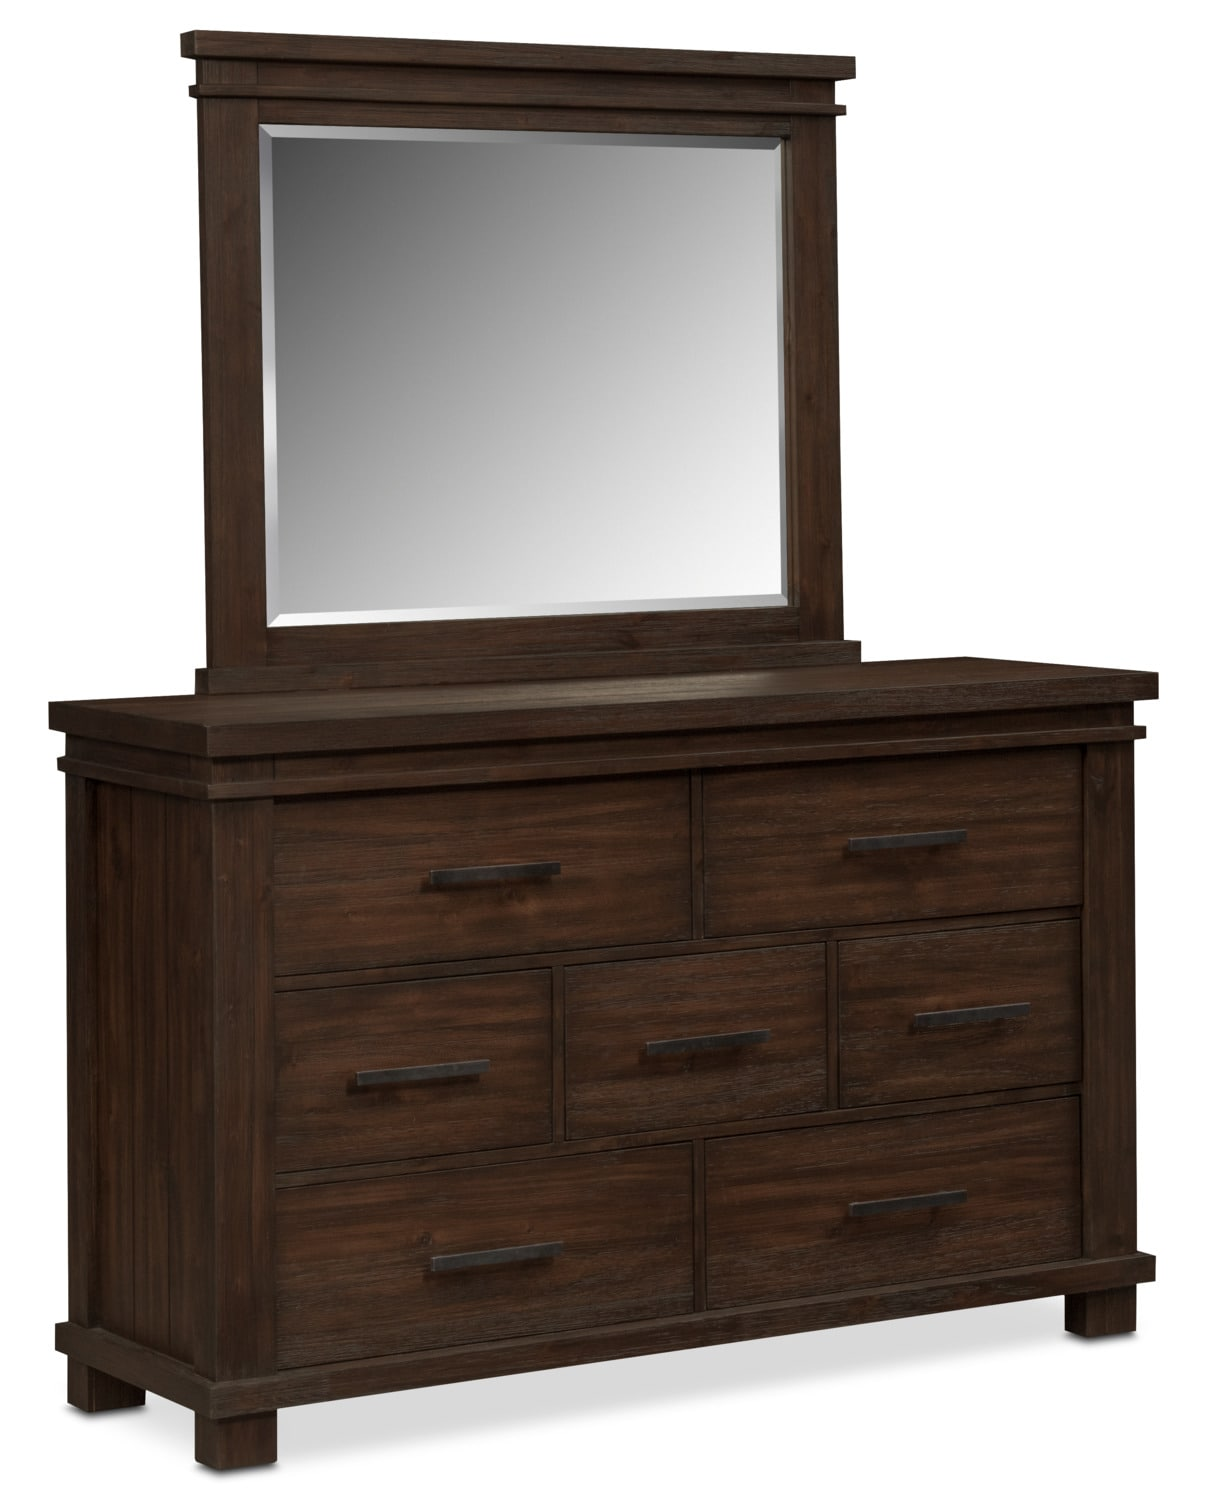 Tribeca Dresser and Mirror - Tobacco